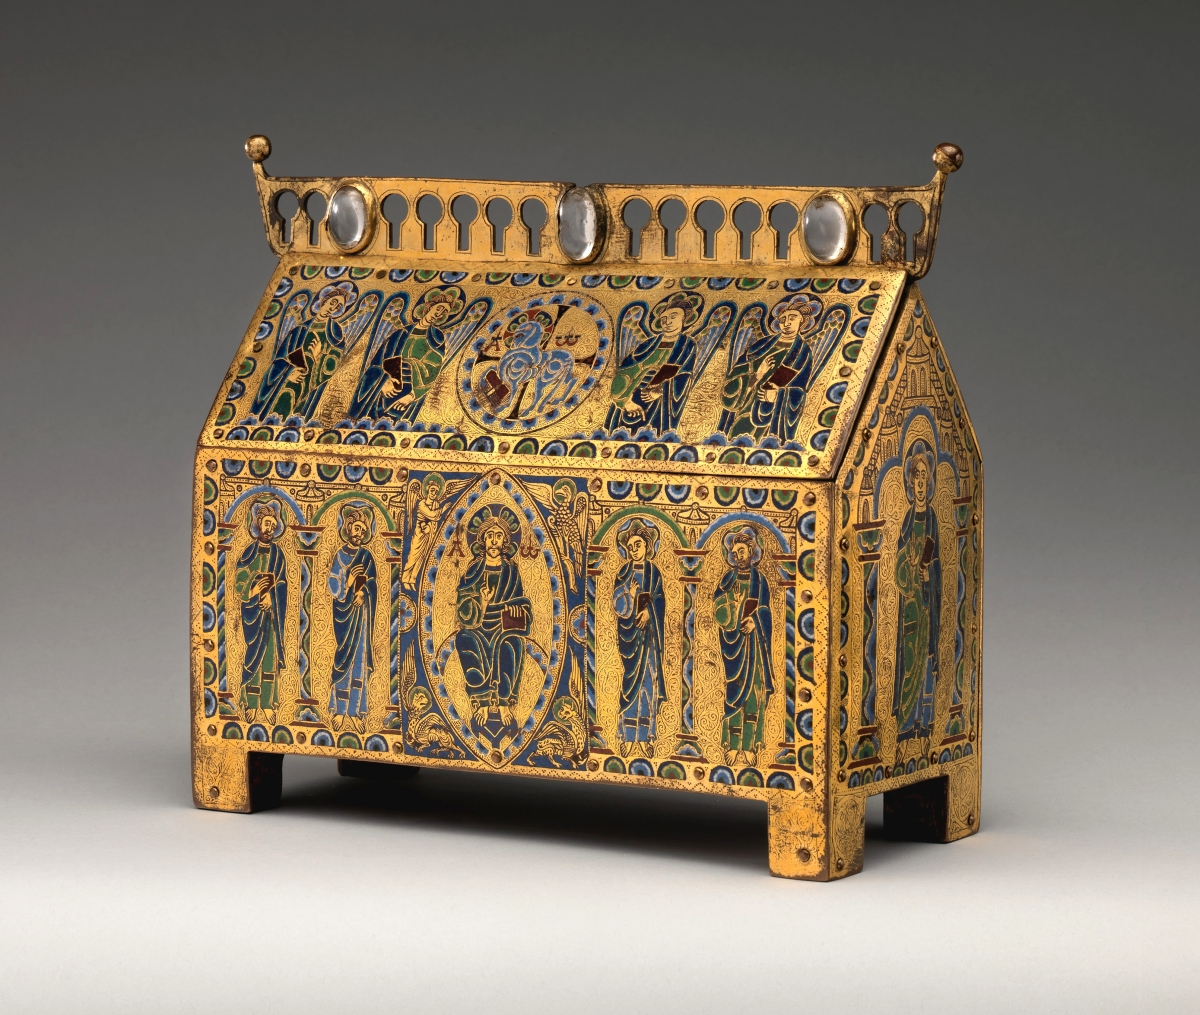 Chasse with Christ in Majesty and the Lamb of God, French, circa 1180–90. Champlevé enamel, copper and wood core. Metropolitan Museum of Art, gift of J. Pierpont Morgan, 1917.